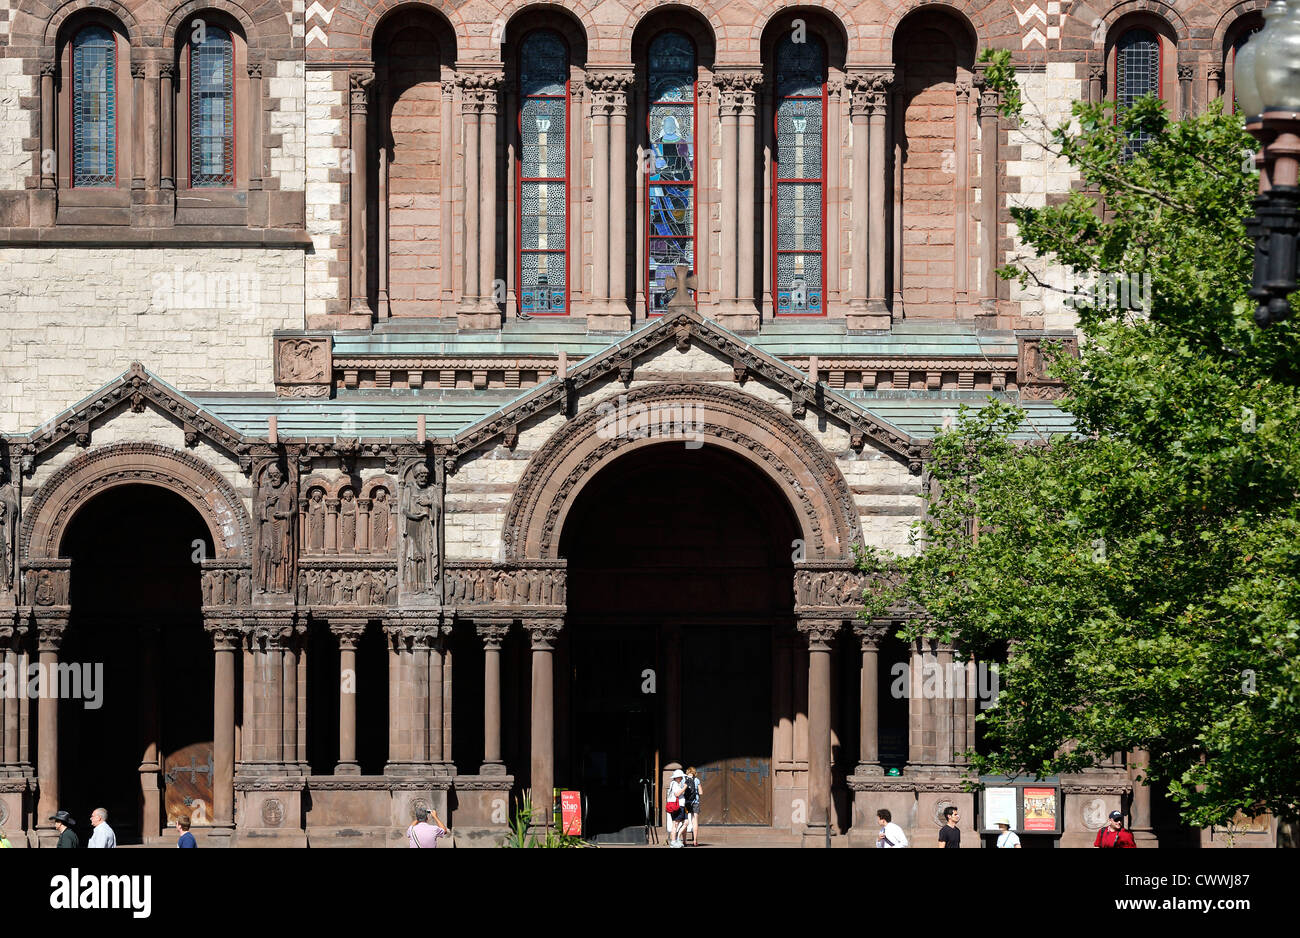 Trinity Church, Boston, Massachusetts - Stock Image